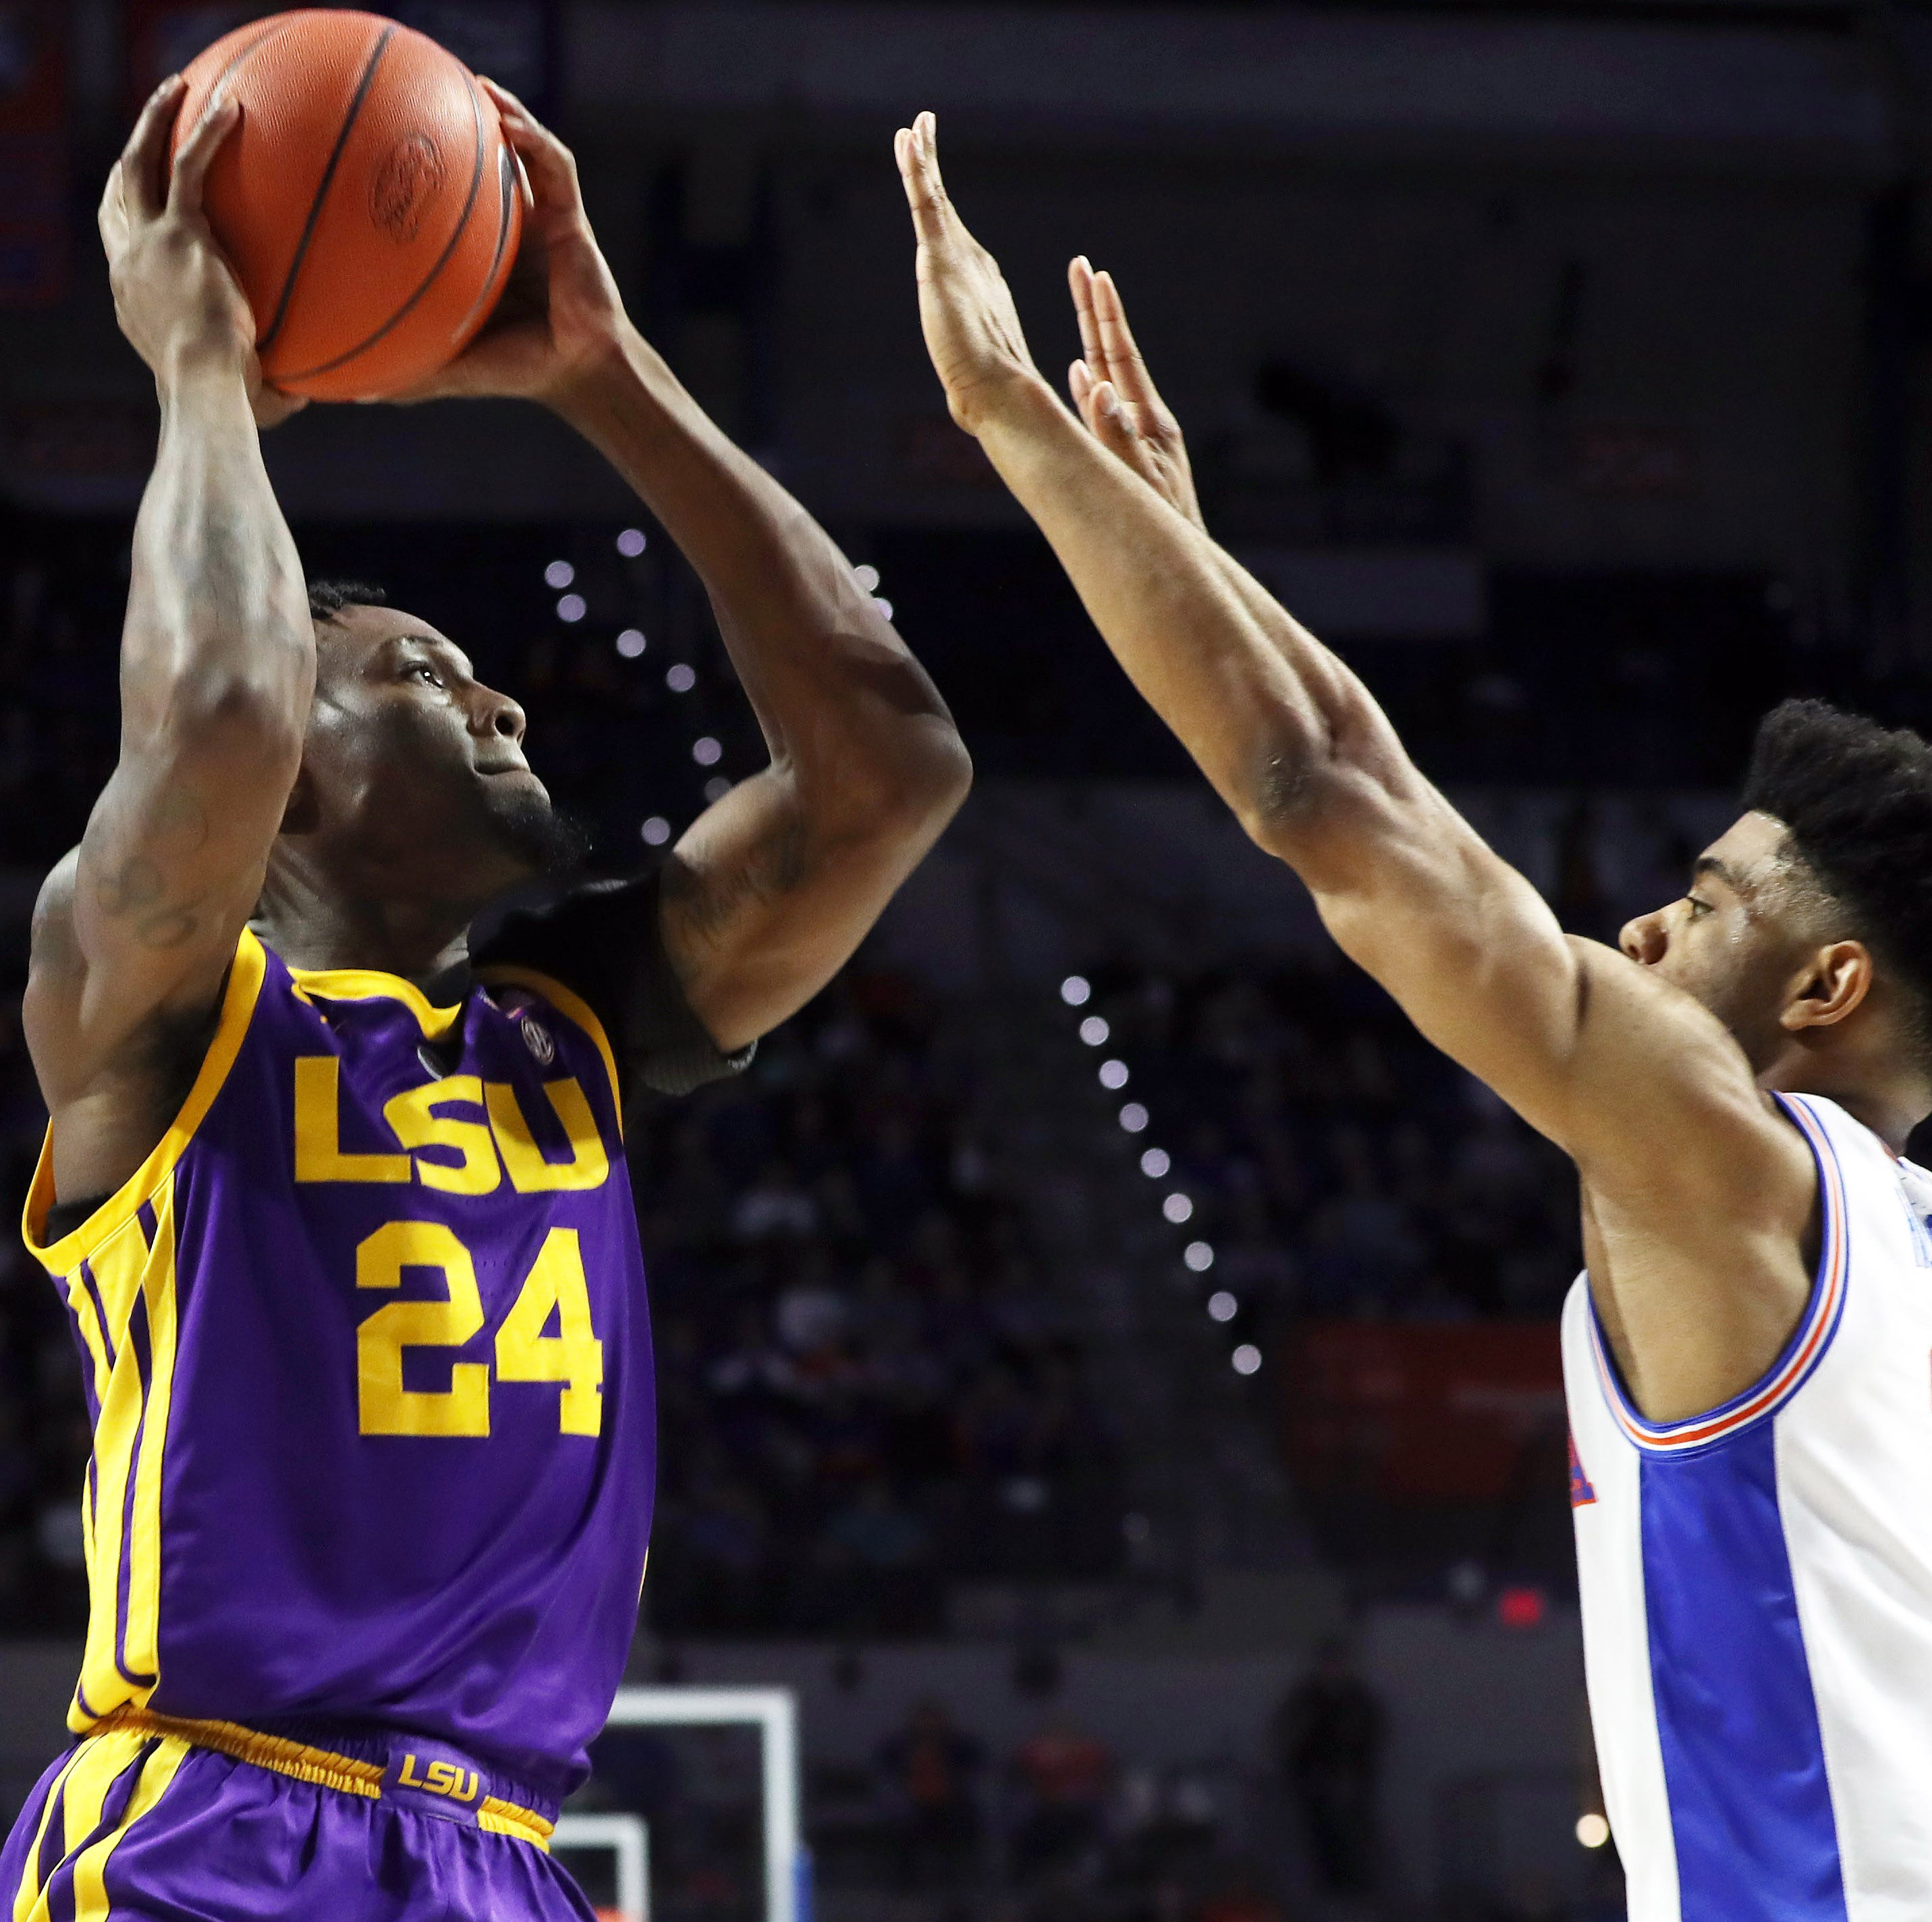 SEC Basketball Tournament bracket: What happens to seeds if LSU, Kentucky, Tennessee tie